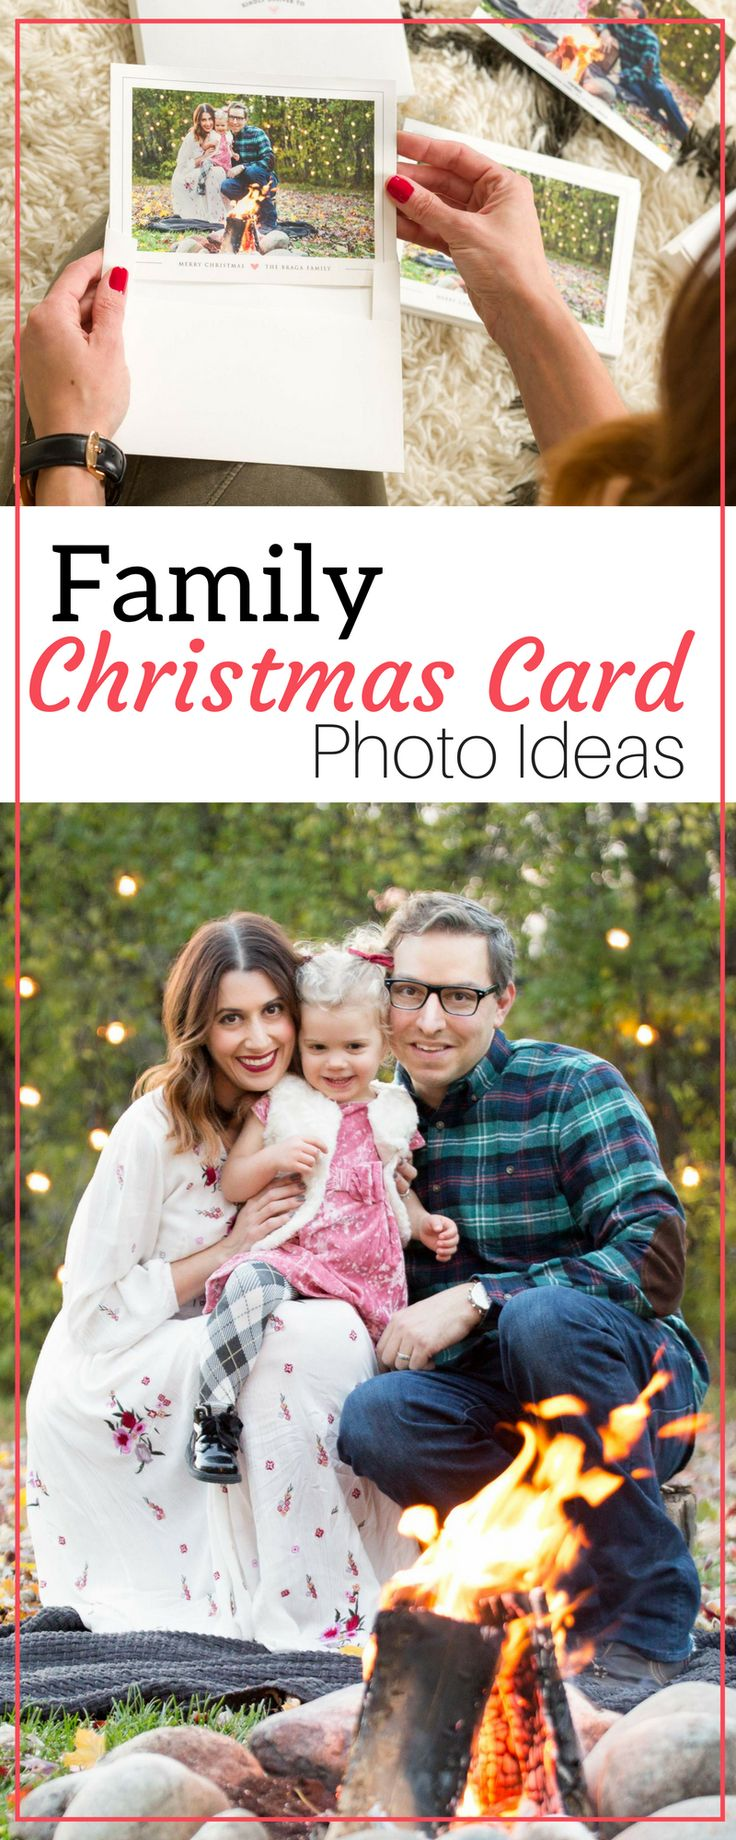 Best Place To Order Photo Christmas Cards